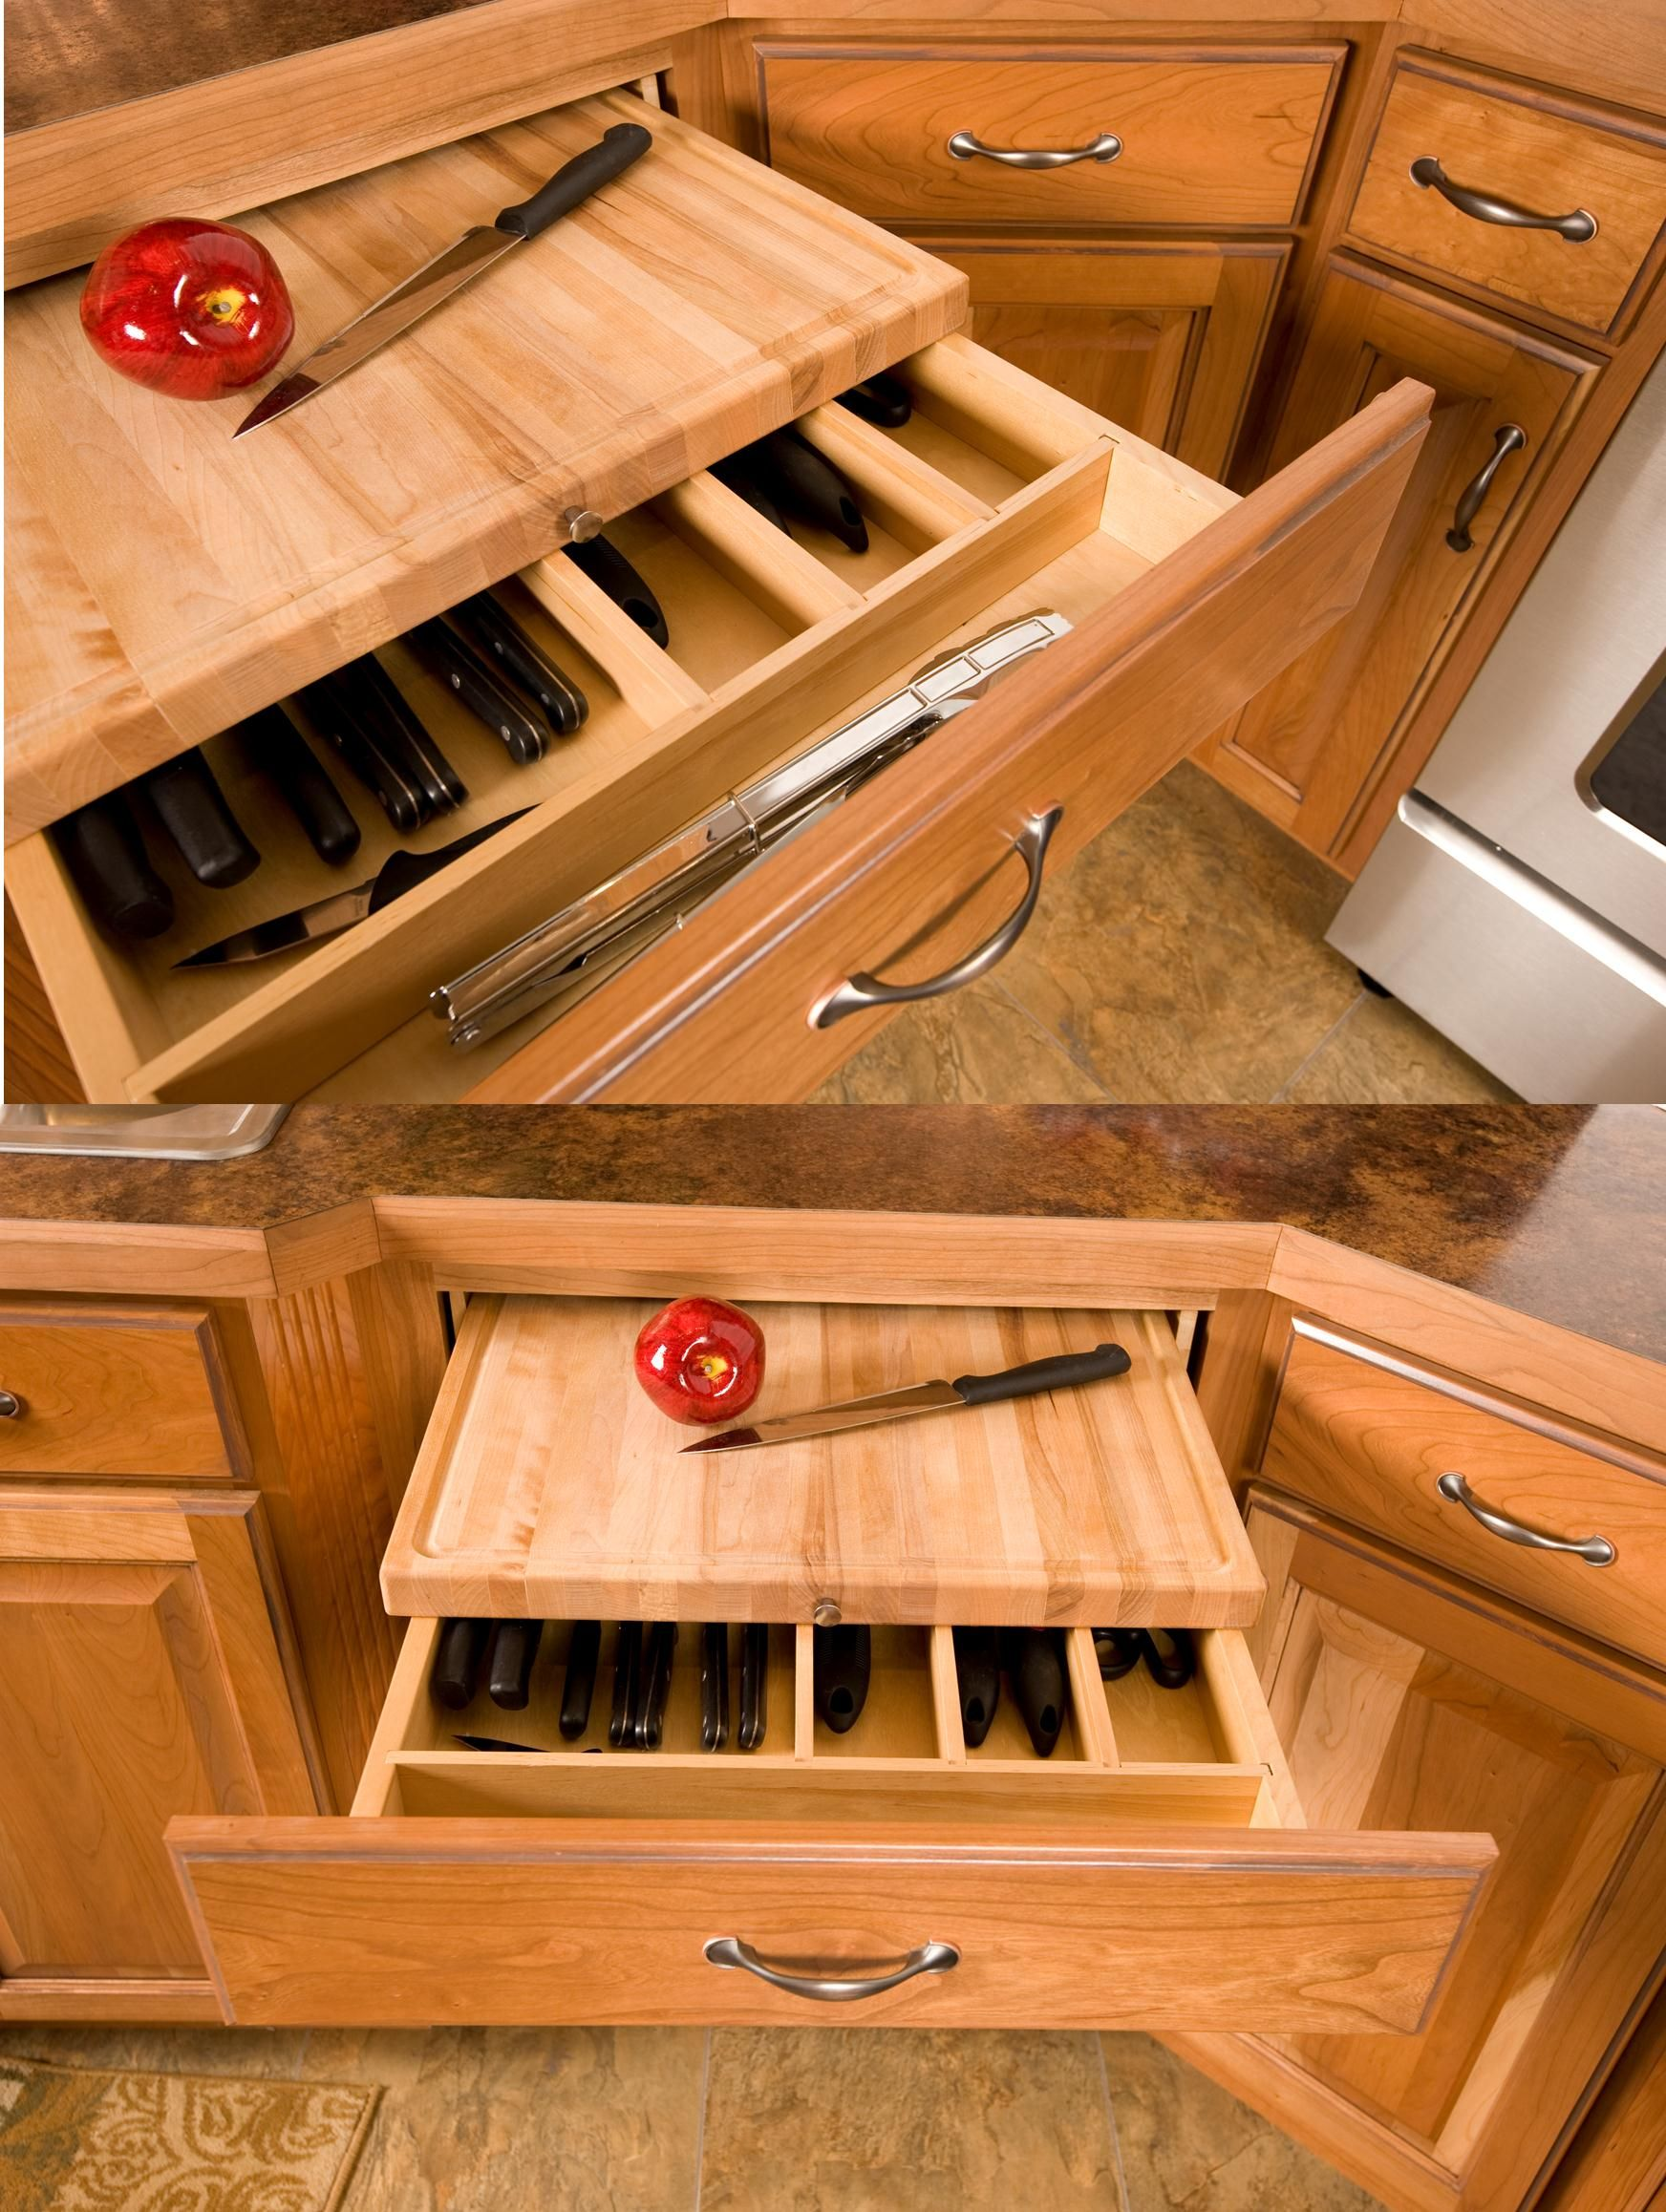 Easy storage with a pull out cutting board right above your knives